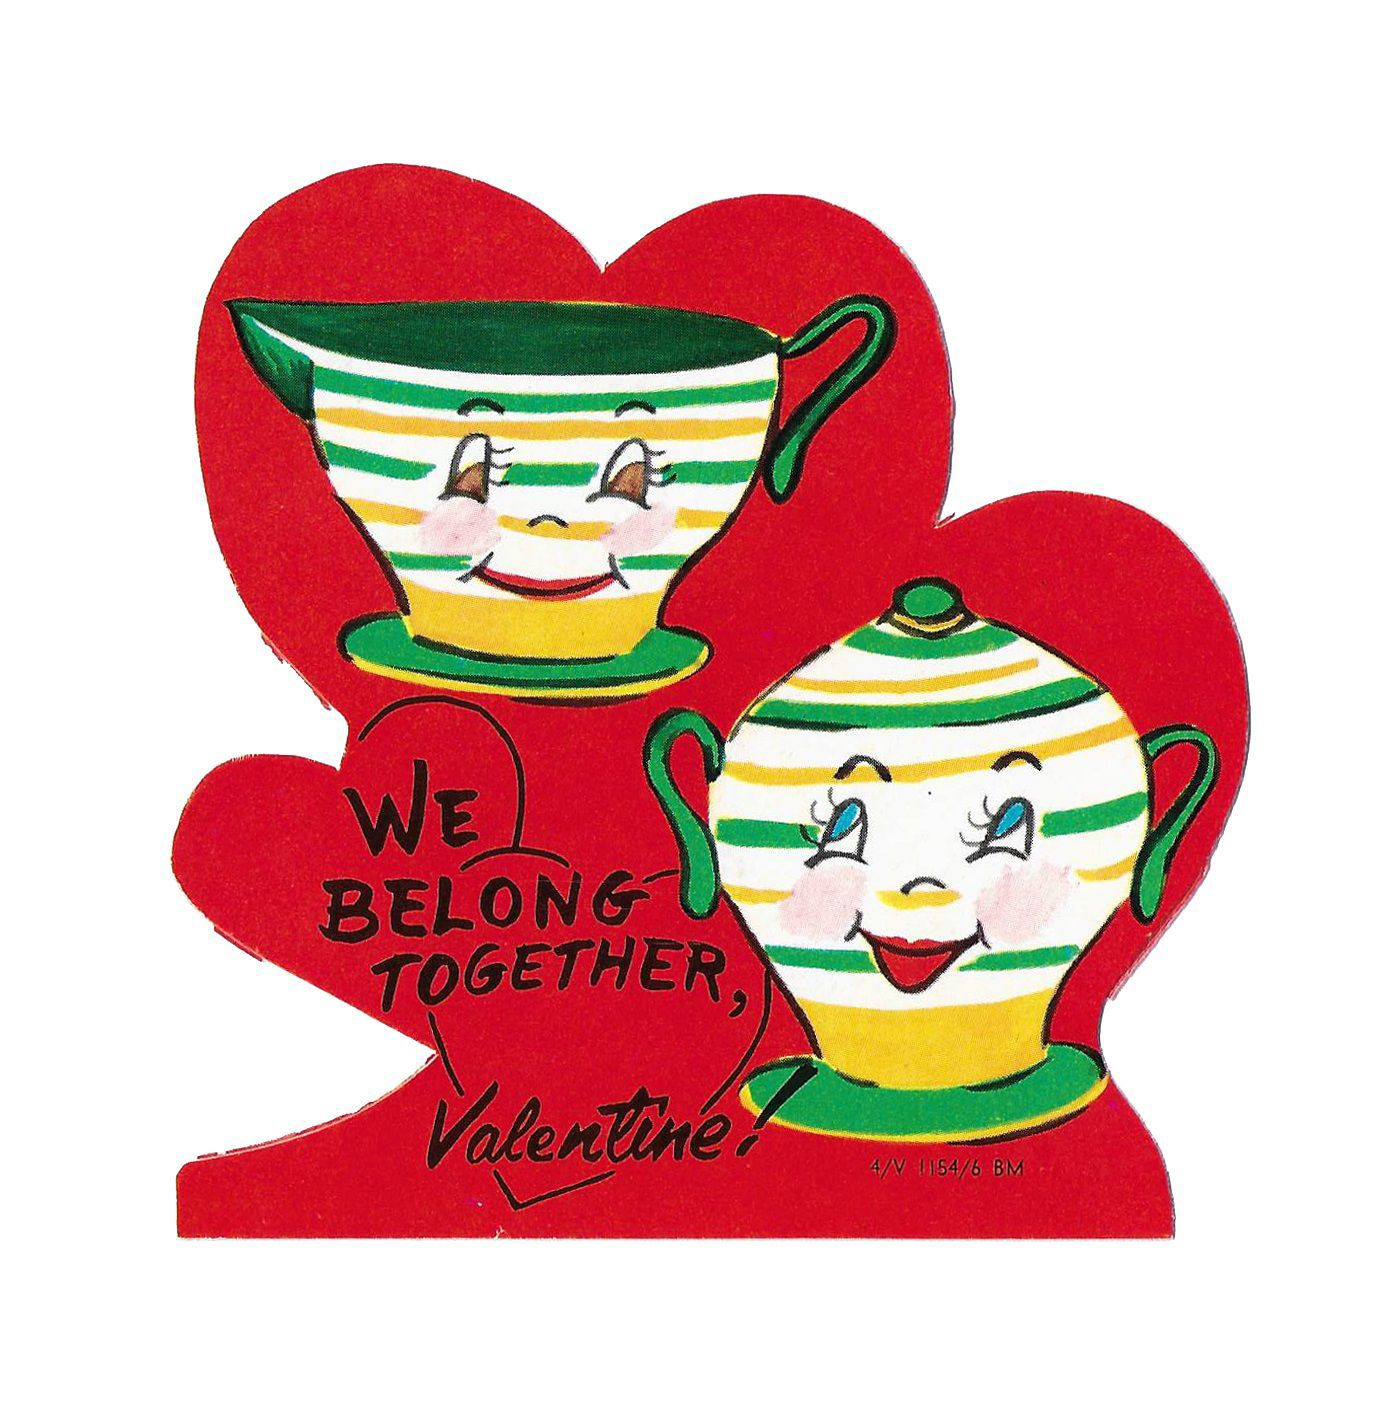 Vintage Valentine\u0027s cards are popular with collectors